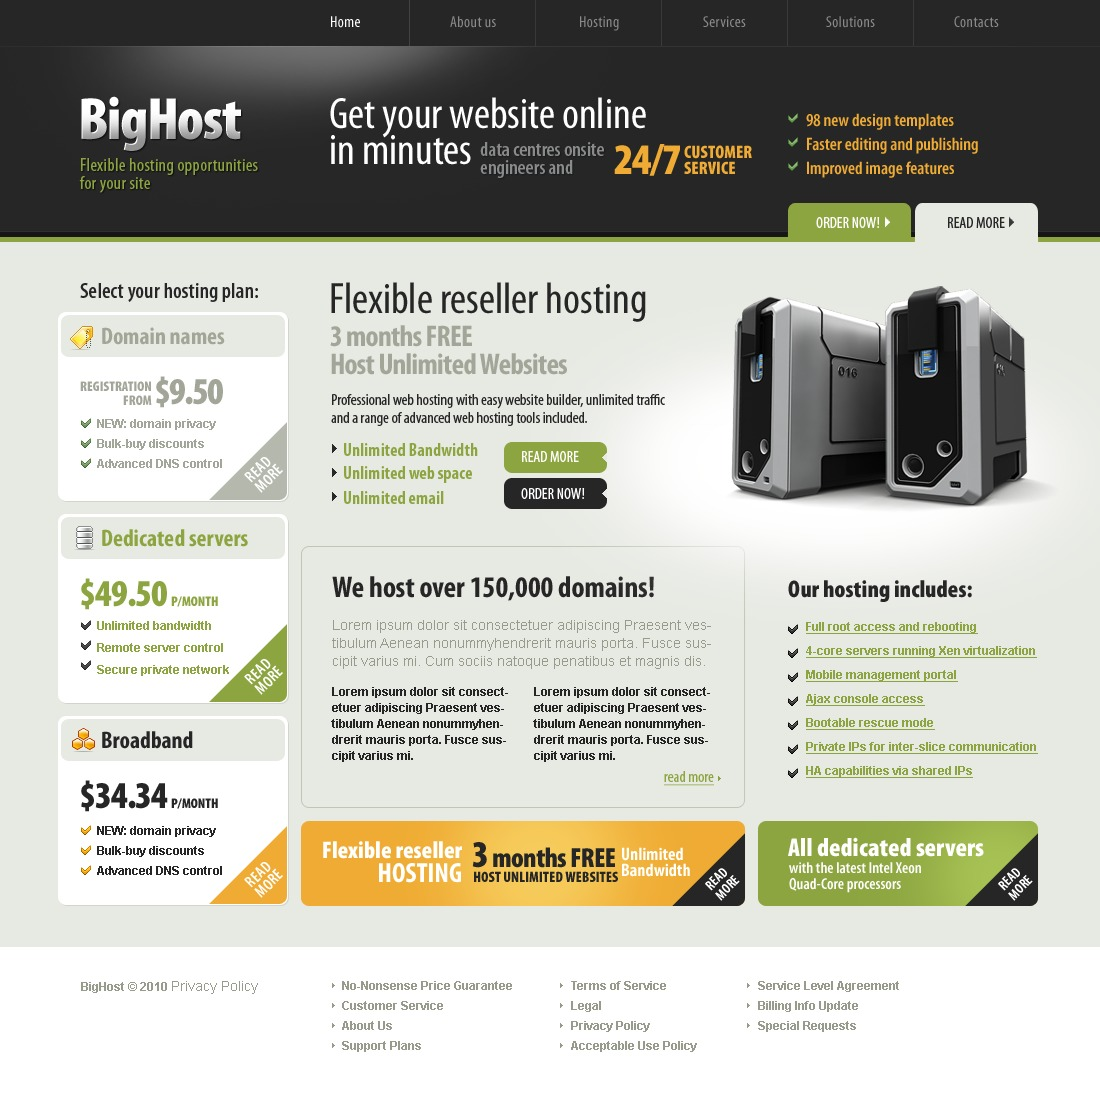 The Big Host PSD Design 54307, one of the best PSD templates of its kind (hosting, flash 8, wide), also known as big host PSD template, hosting company solution PSD template, domain PSD template, services PSD template, beginner PSD template, plan PSD template, standard PSD template, advanced PSD template, dedicated PSD template, workteam PSD template, tools PSD template, special offer PSD template, server PSD template, monitoring PSD template, management PSD template, account PSD template, activation PSD template, client PSD template, technology solution PSD template, data center provider PSD template, traffic PSD template, internet PSD template, web IT processor PSD template, spa and related with big host, hosting company solution, domain, services, beginner, plan, standard, advanced, dedicated, workteam, tools, special offer, server, monitoring, management, account, activation, client, technology solution, data center provider, traffic, internet, web IT processor, spa, etc.